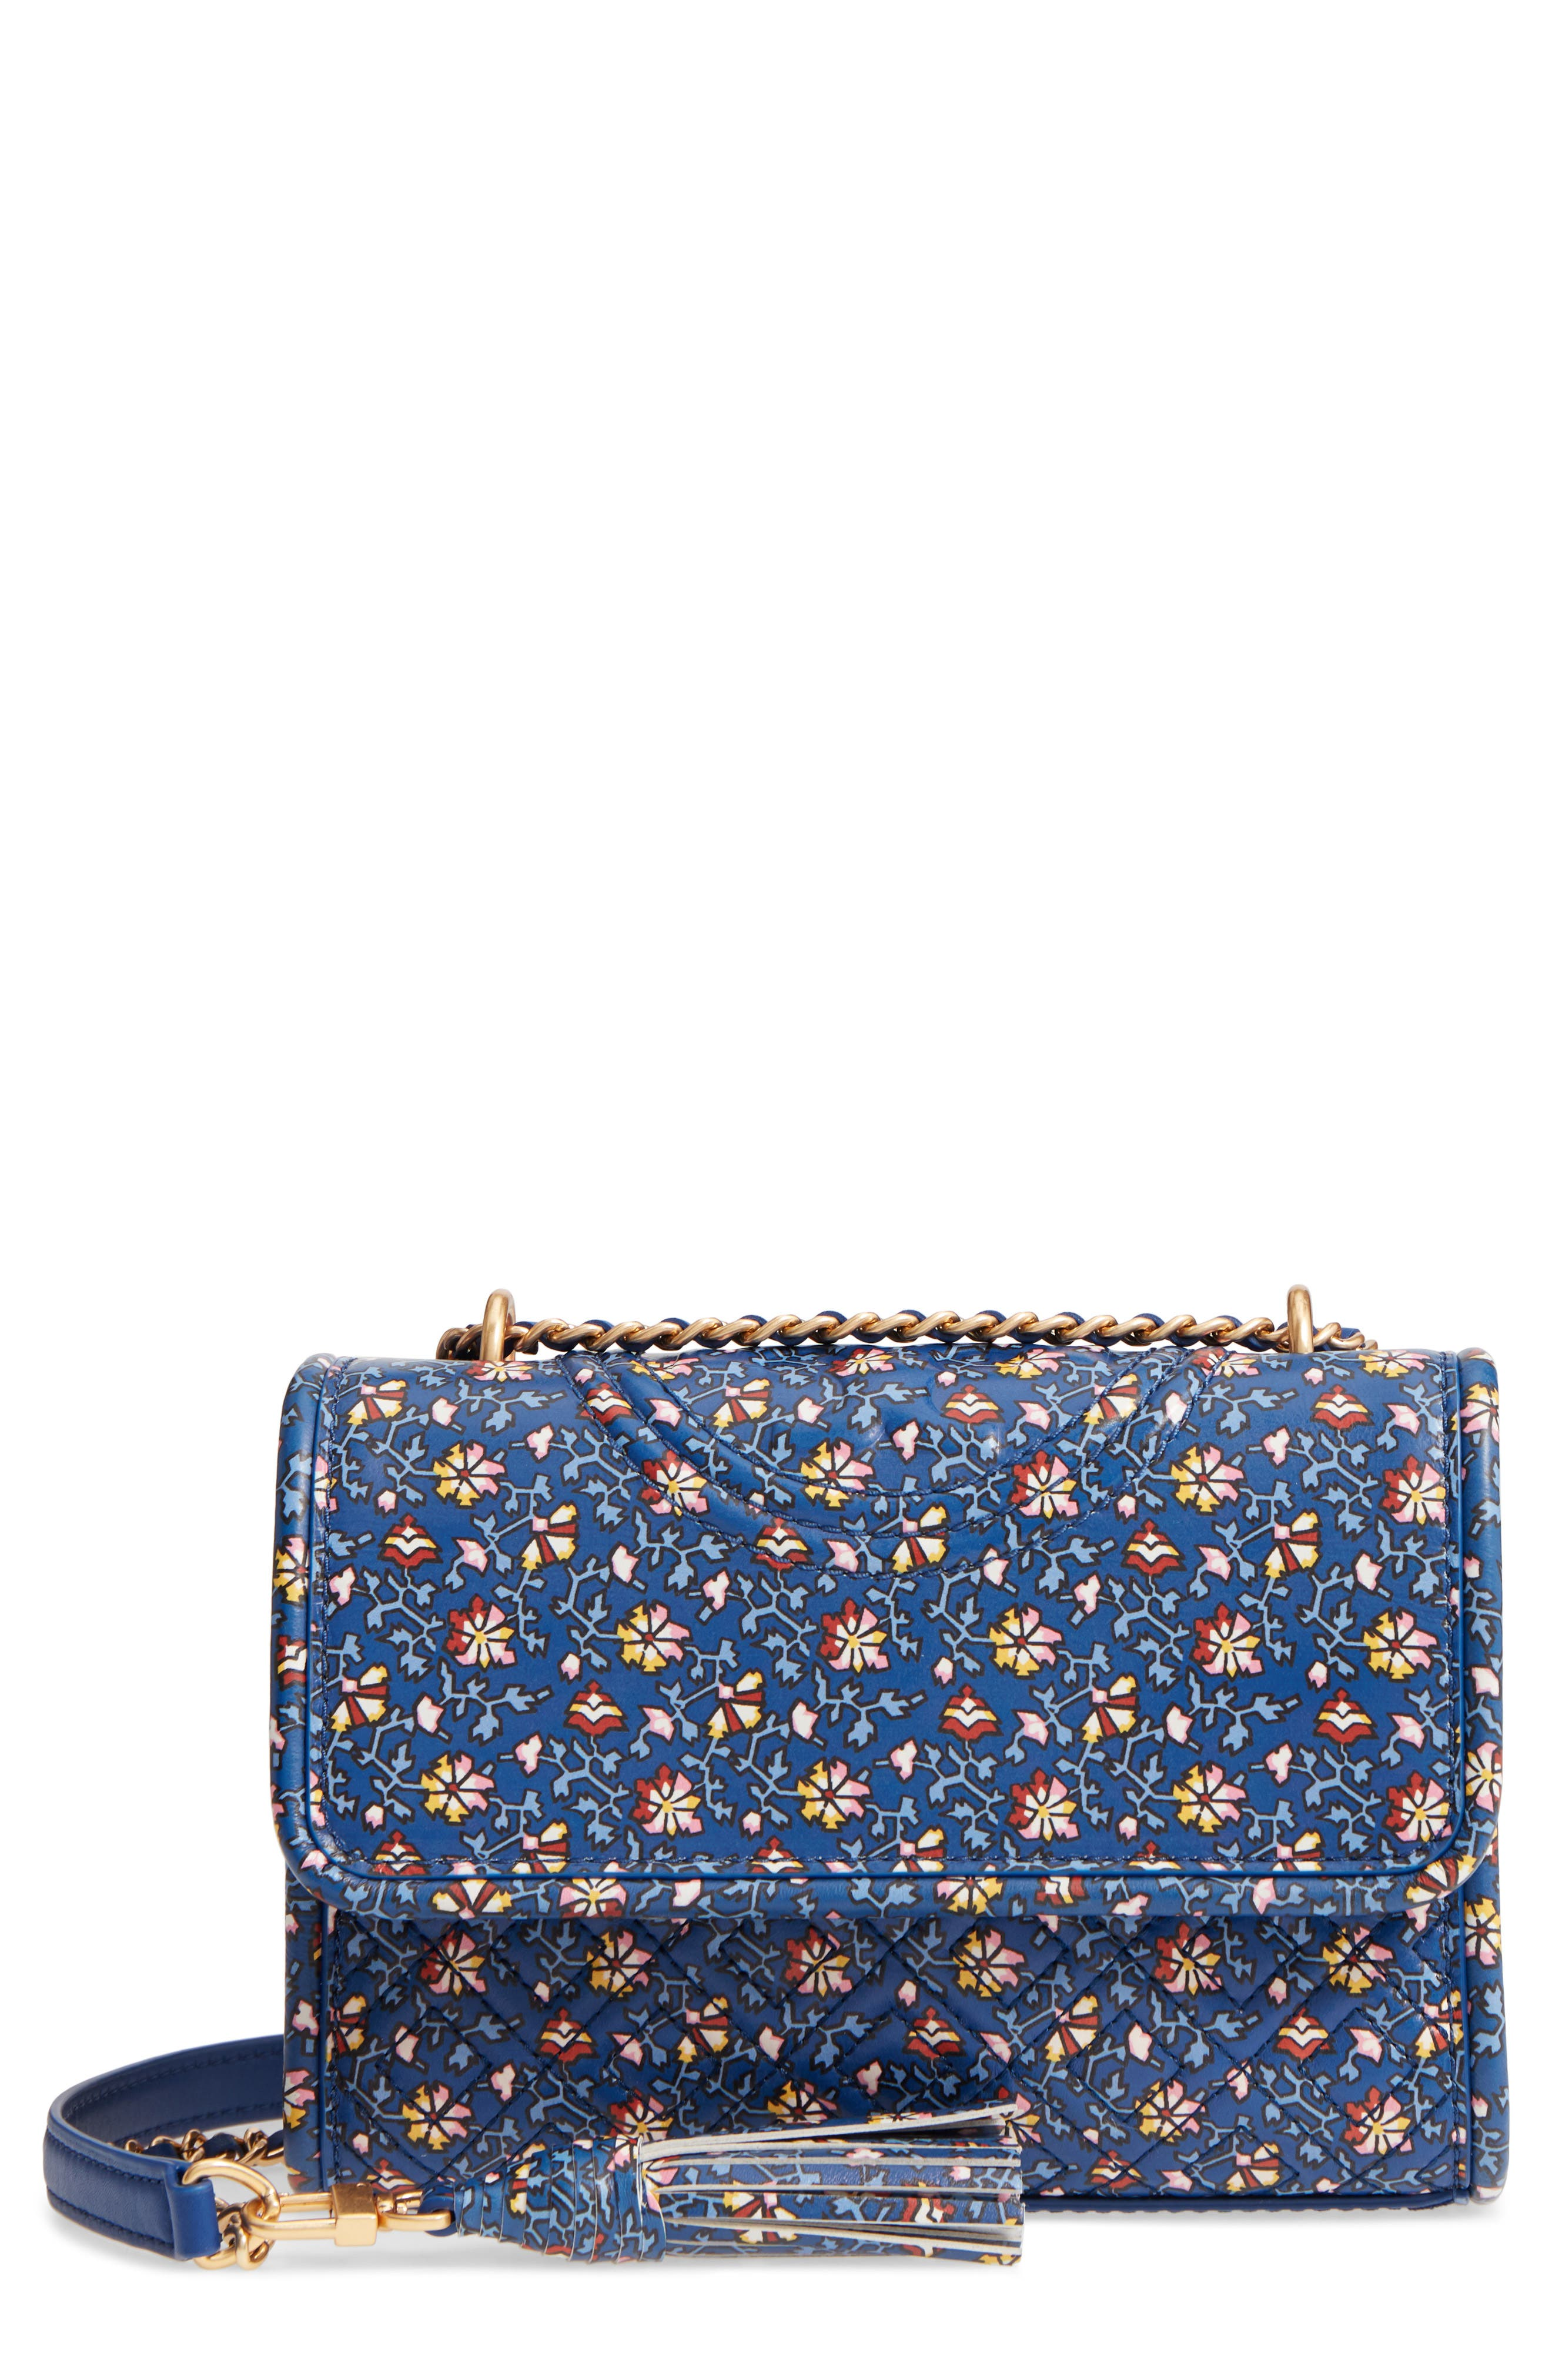 Fleming Print Leather Convertible Shoulder Bag,                         Main,                         color, Blue Wild Pansy